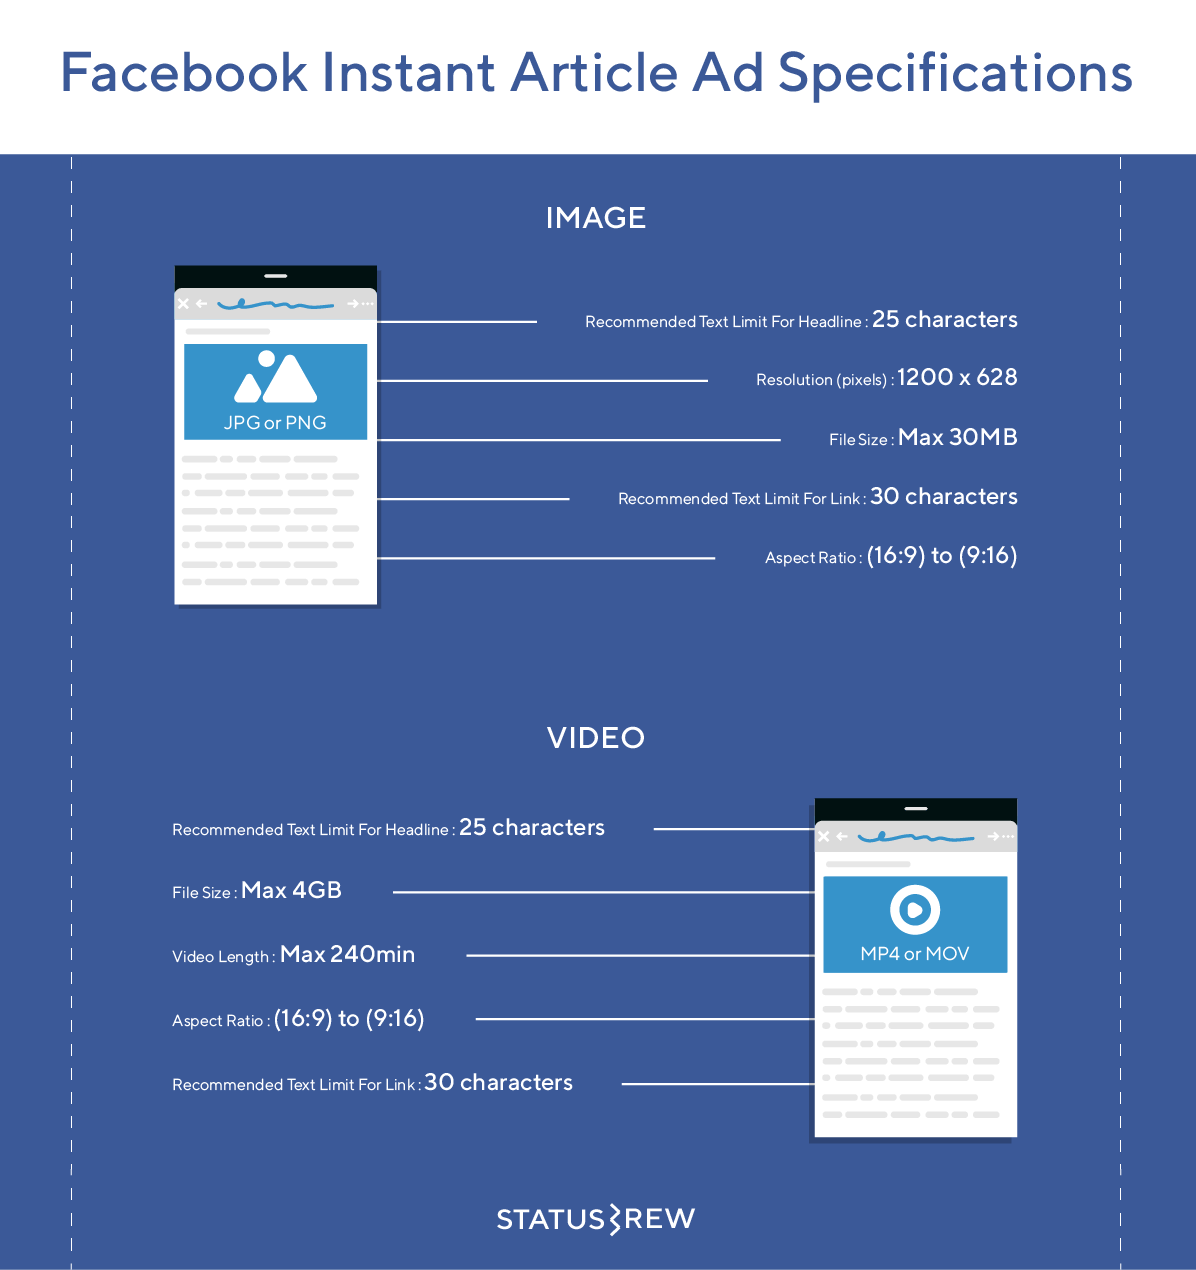 Facebook Instant Article Ad Specifications